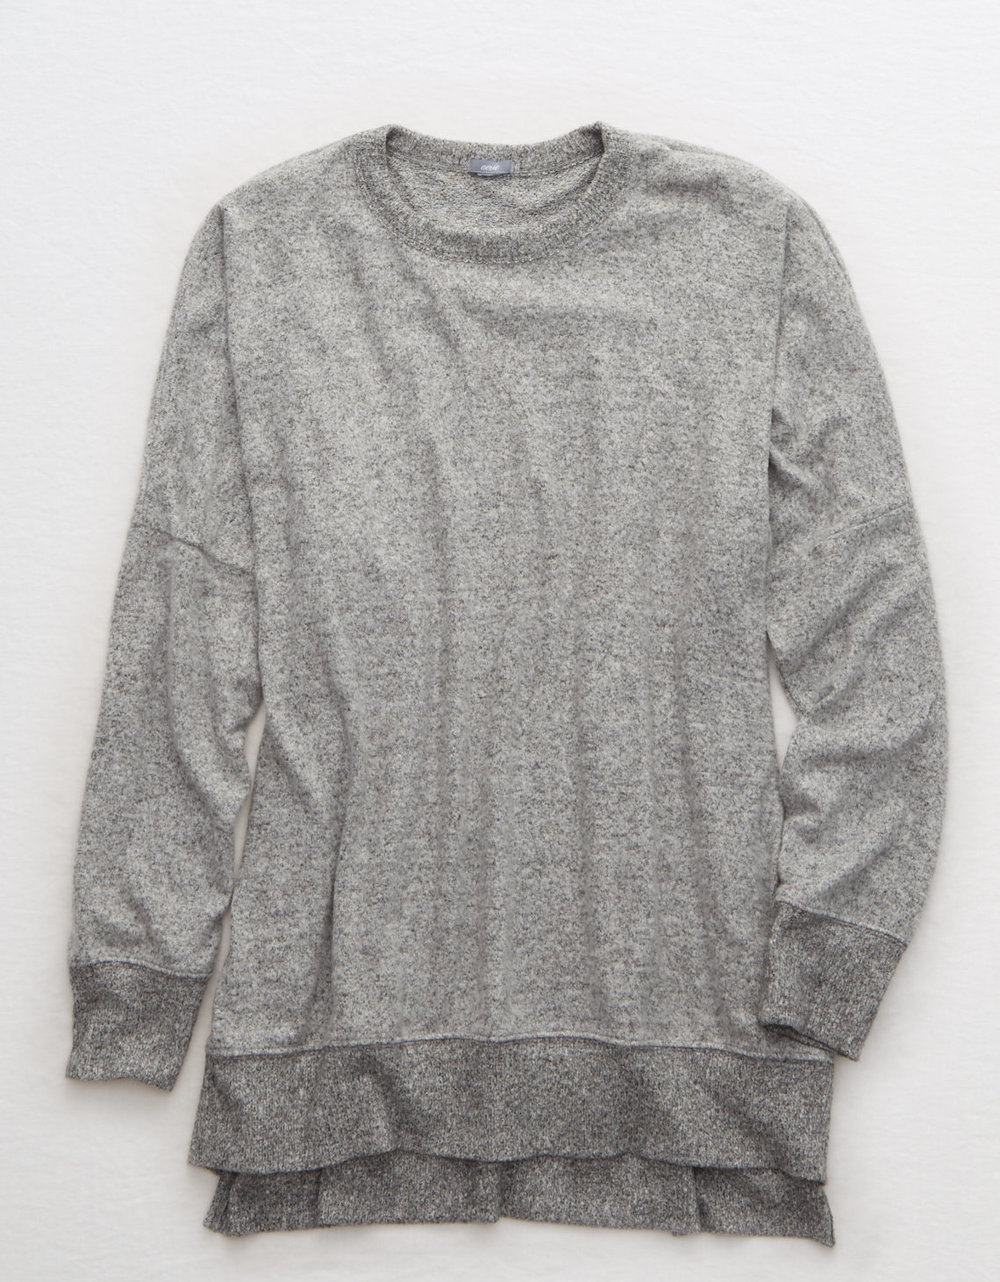 AERIE PLUSH HOMETOWN SWEATSHIRT